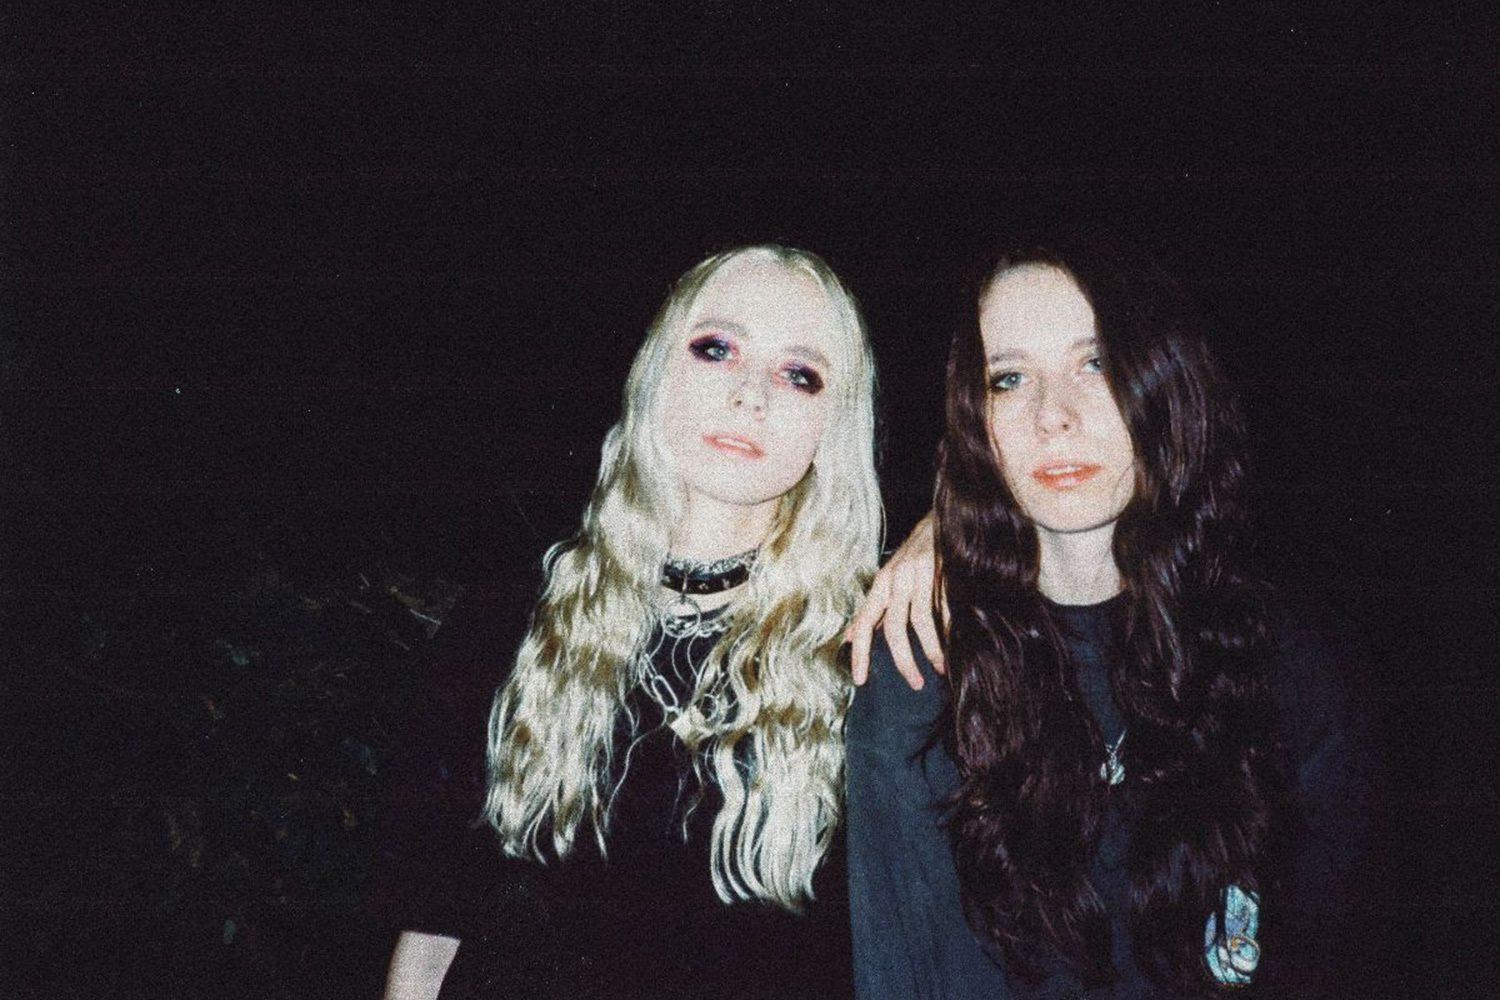 Softcult have announced their debut EP with new single, 'Uzumaki'